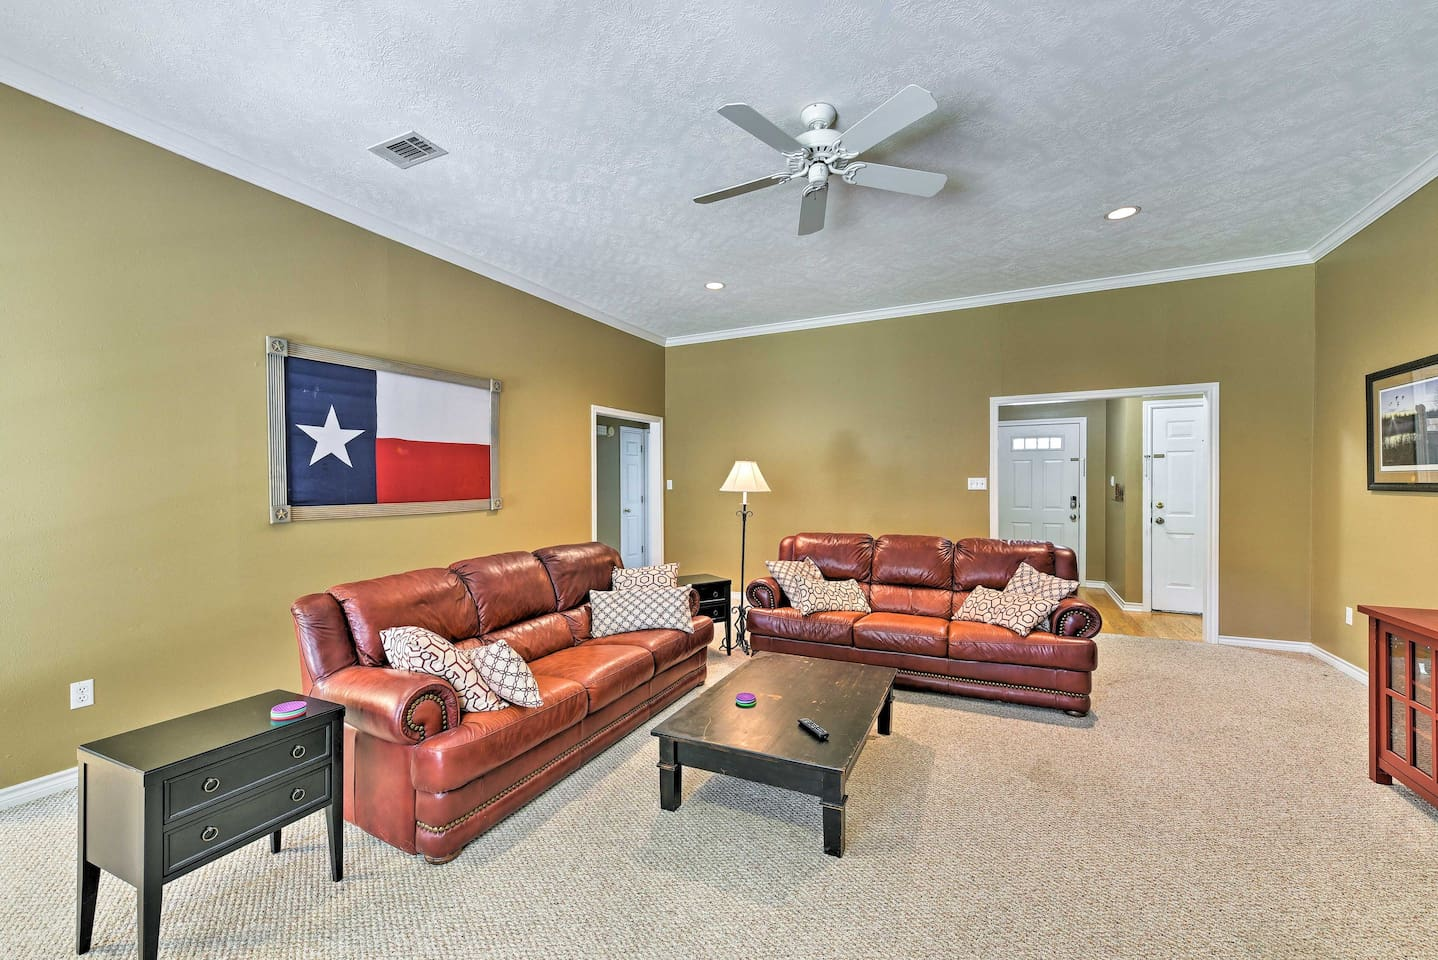 Enjoy your stay at this College Station vacation rental house.